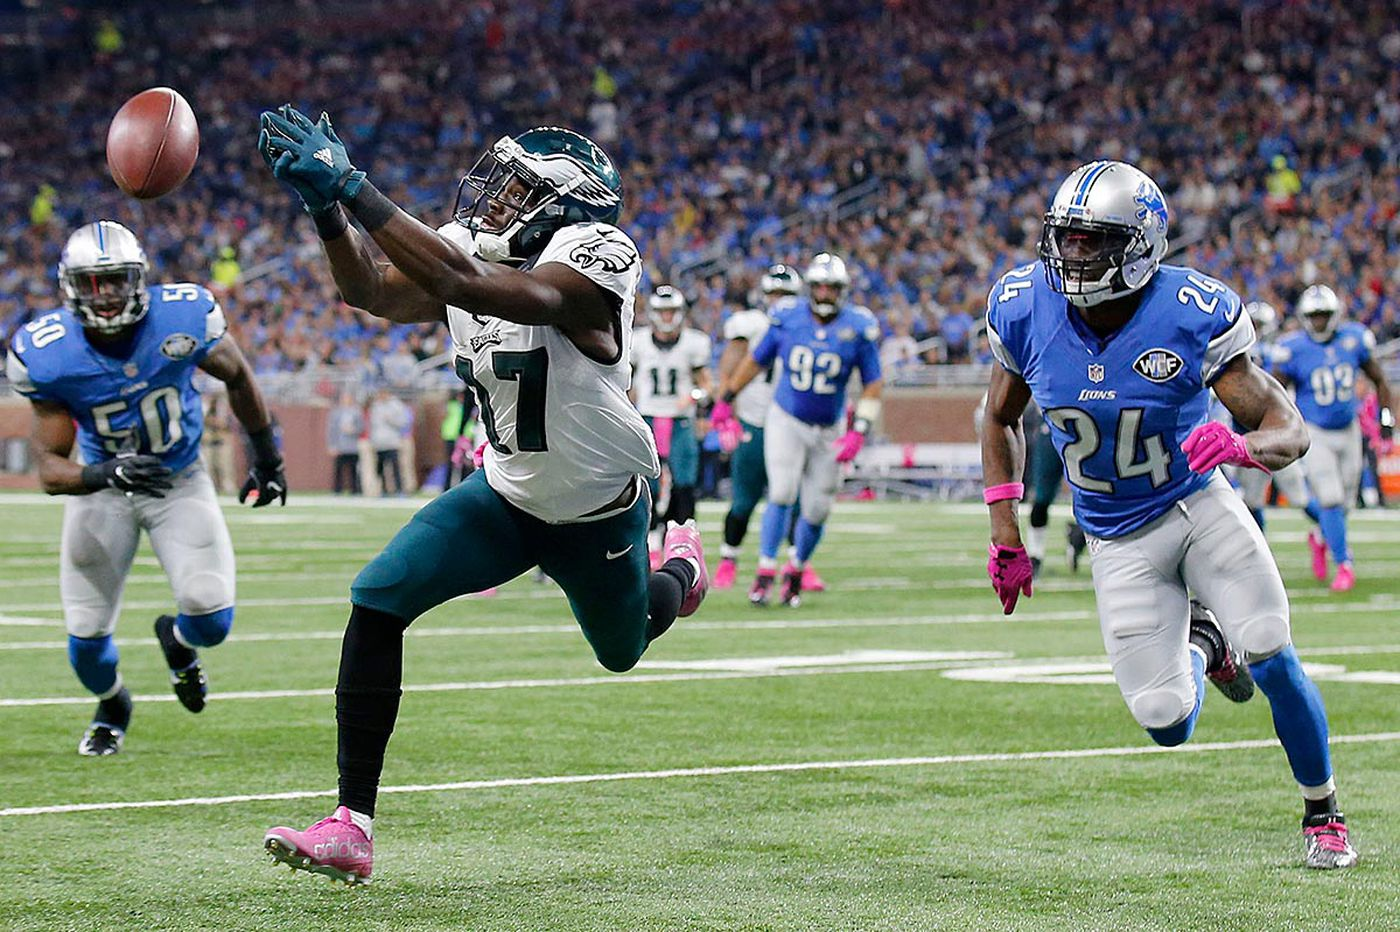 Bowen: Agholor remains a perplexing player